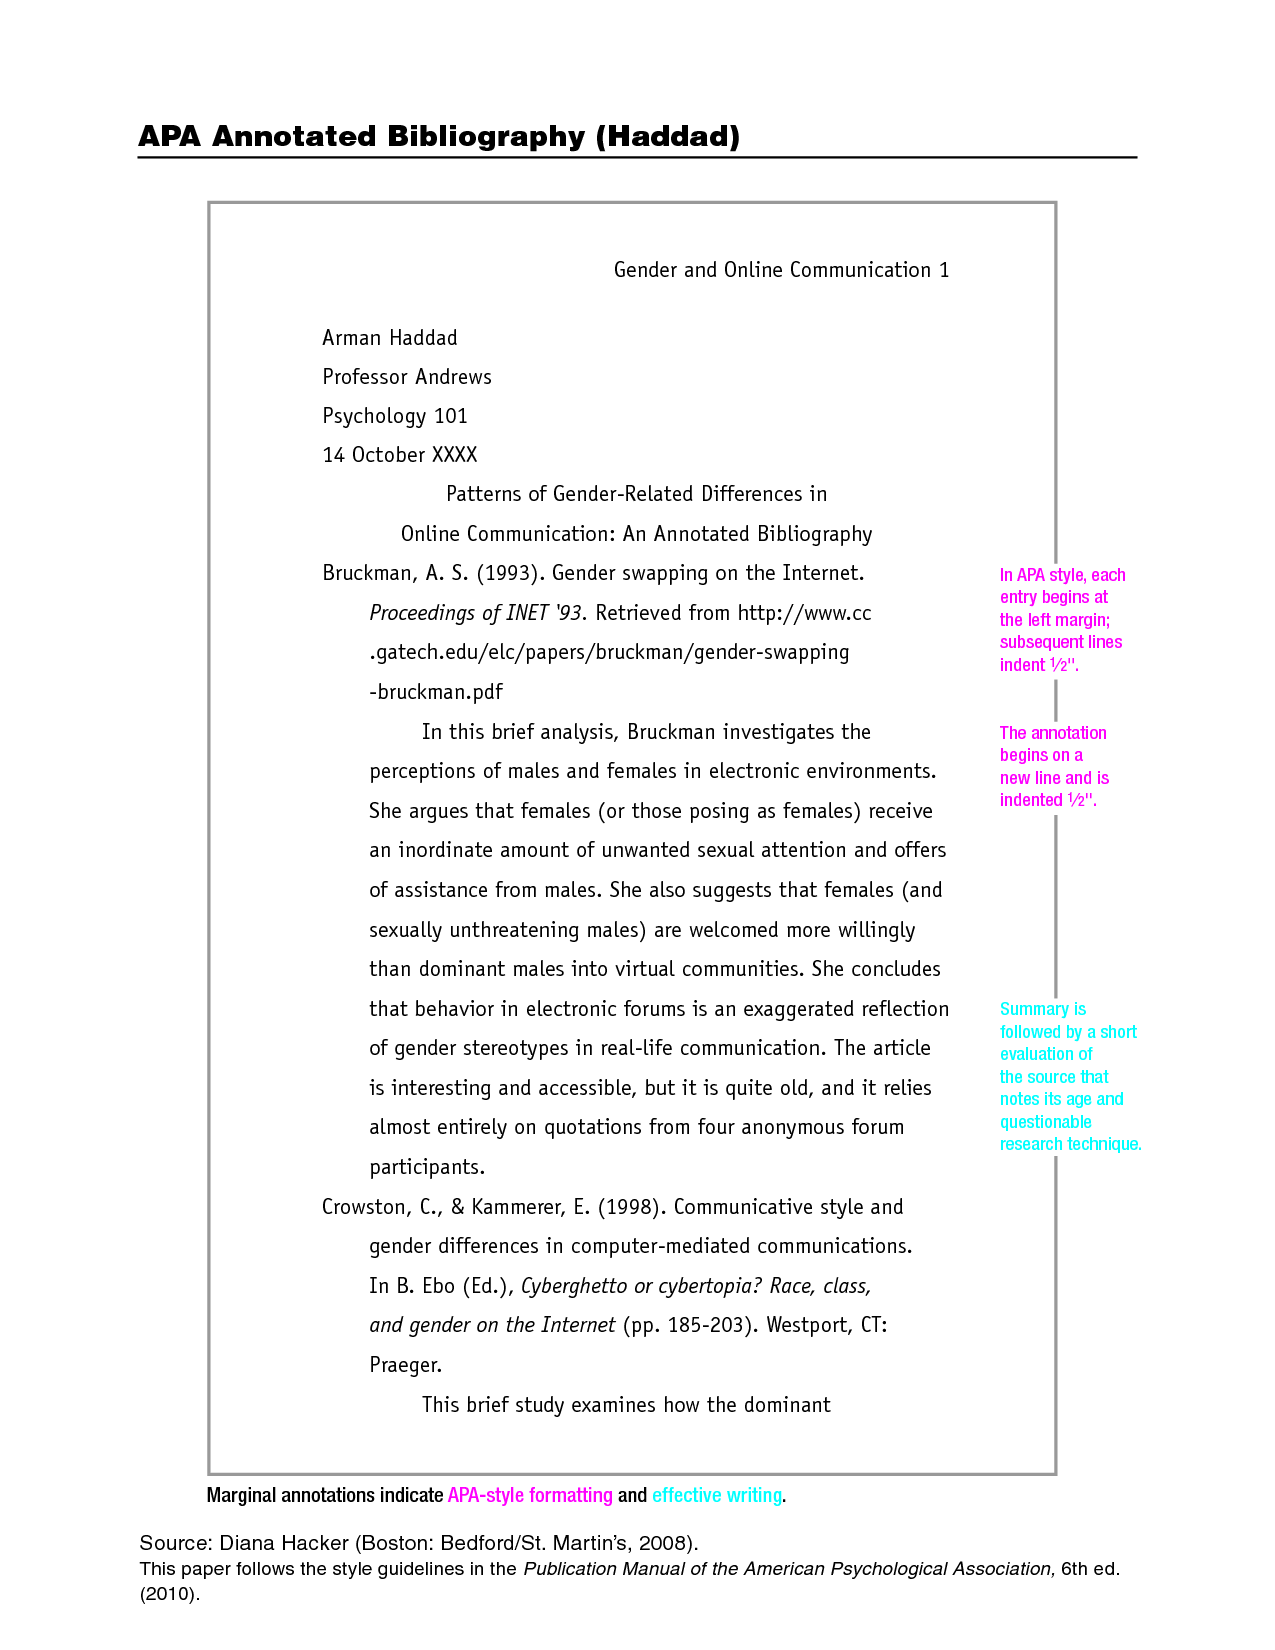 011 Apa Paper Template Si6pk8fz Essay Style Amazing Answer Harvard Format Guide Full